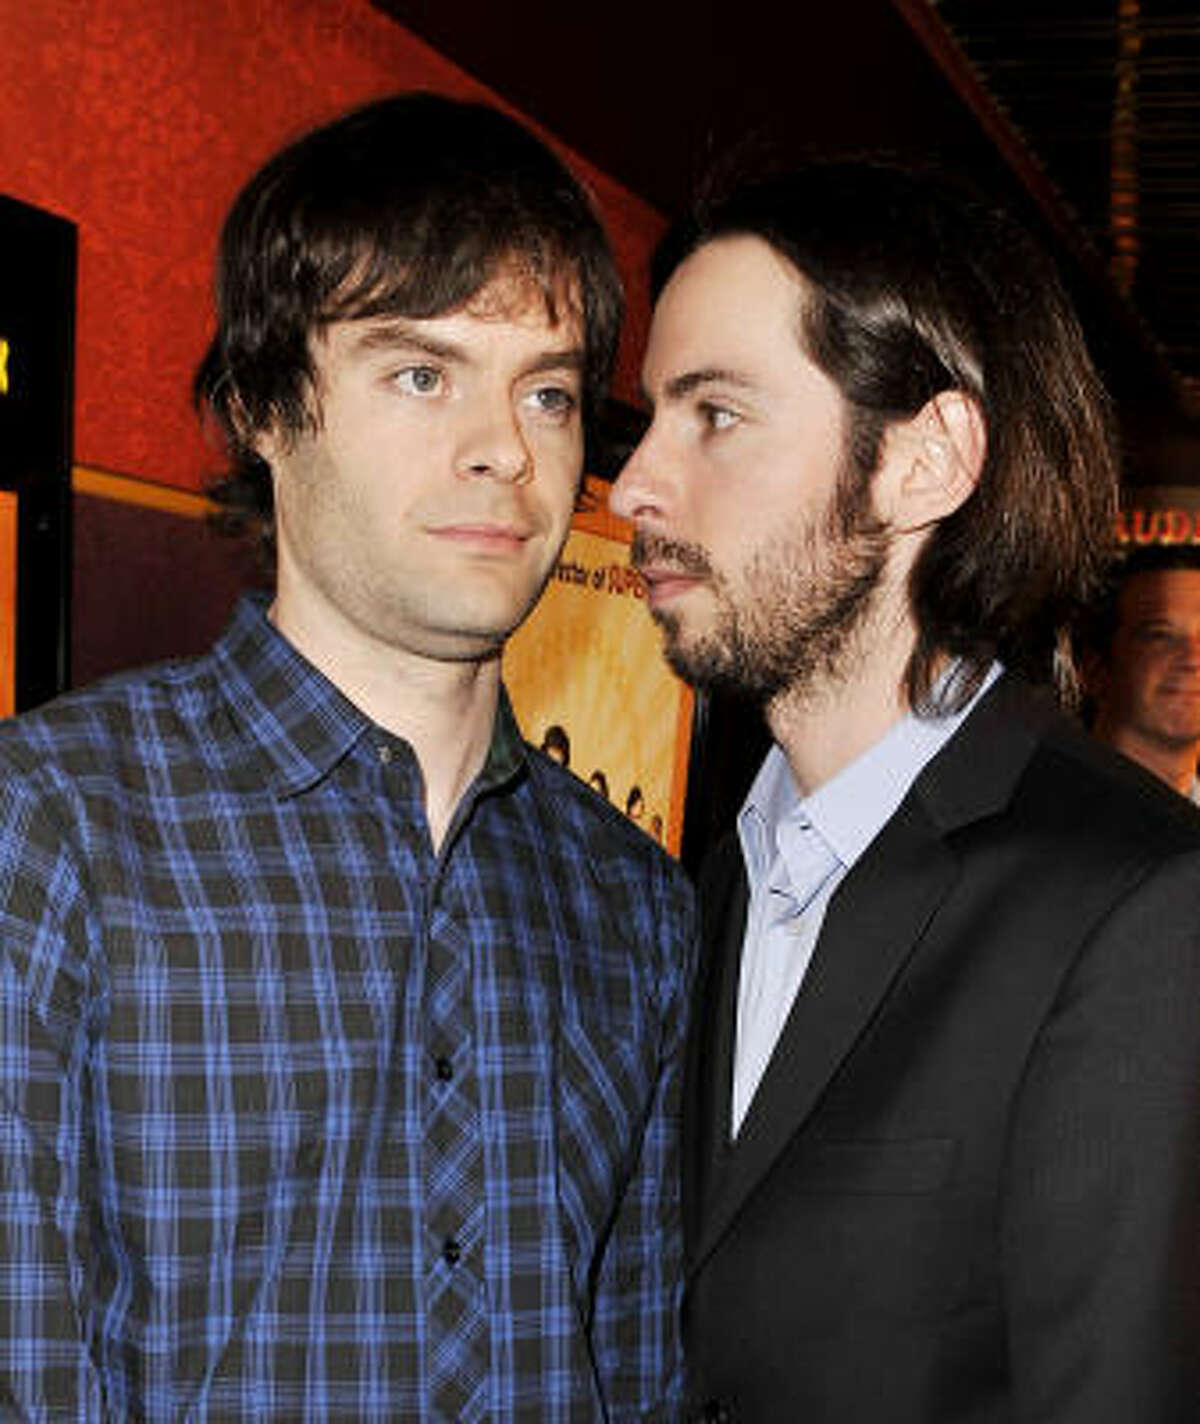 Actors Bill Hader, left, and Martin Starr both starred in director Greg Mottola's Superbad.